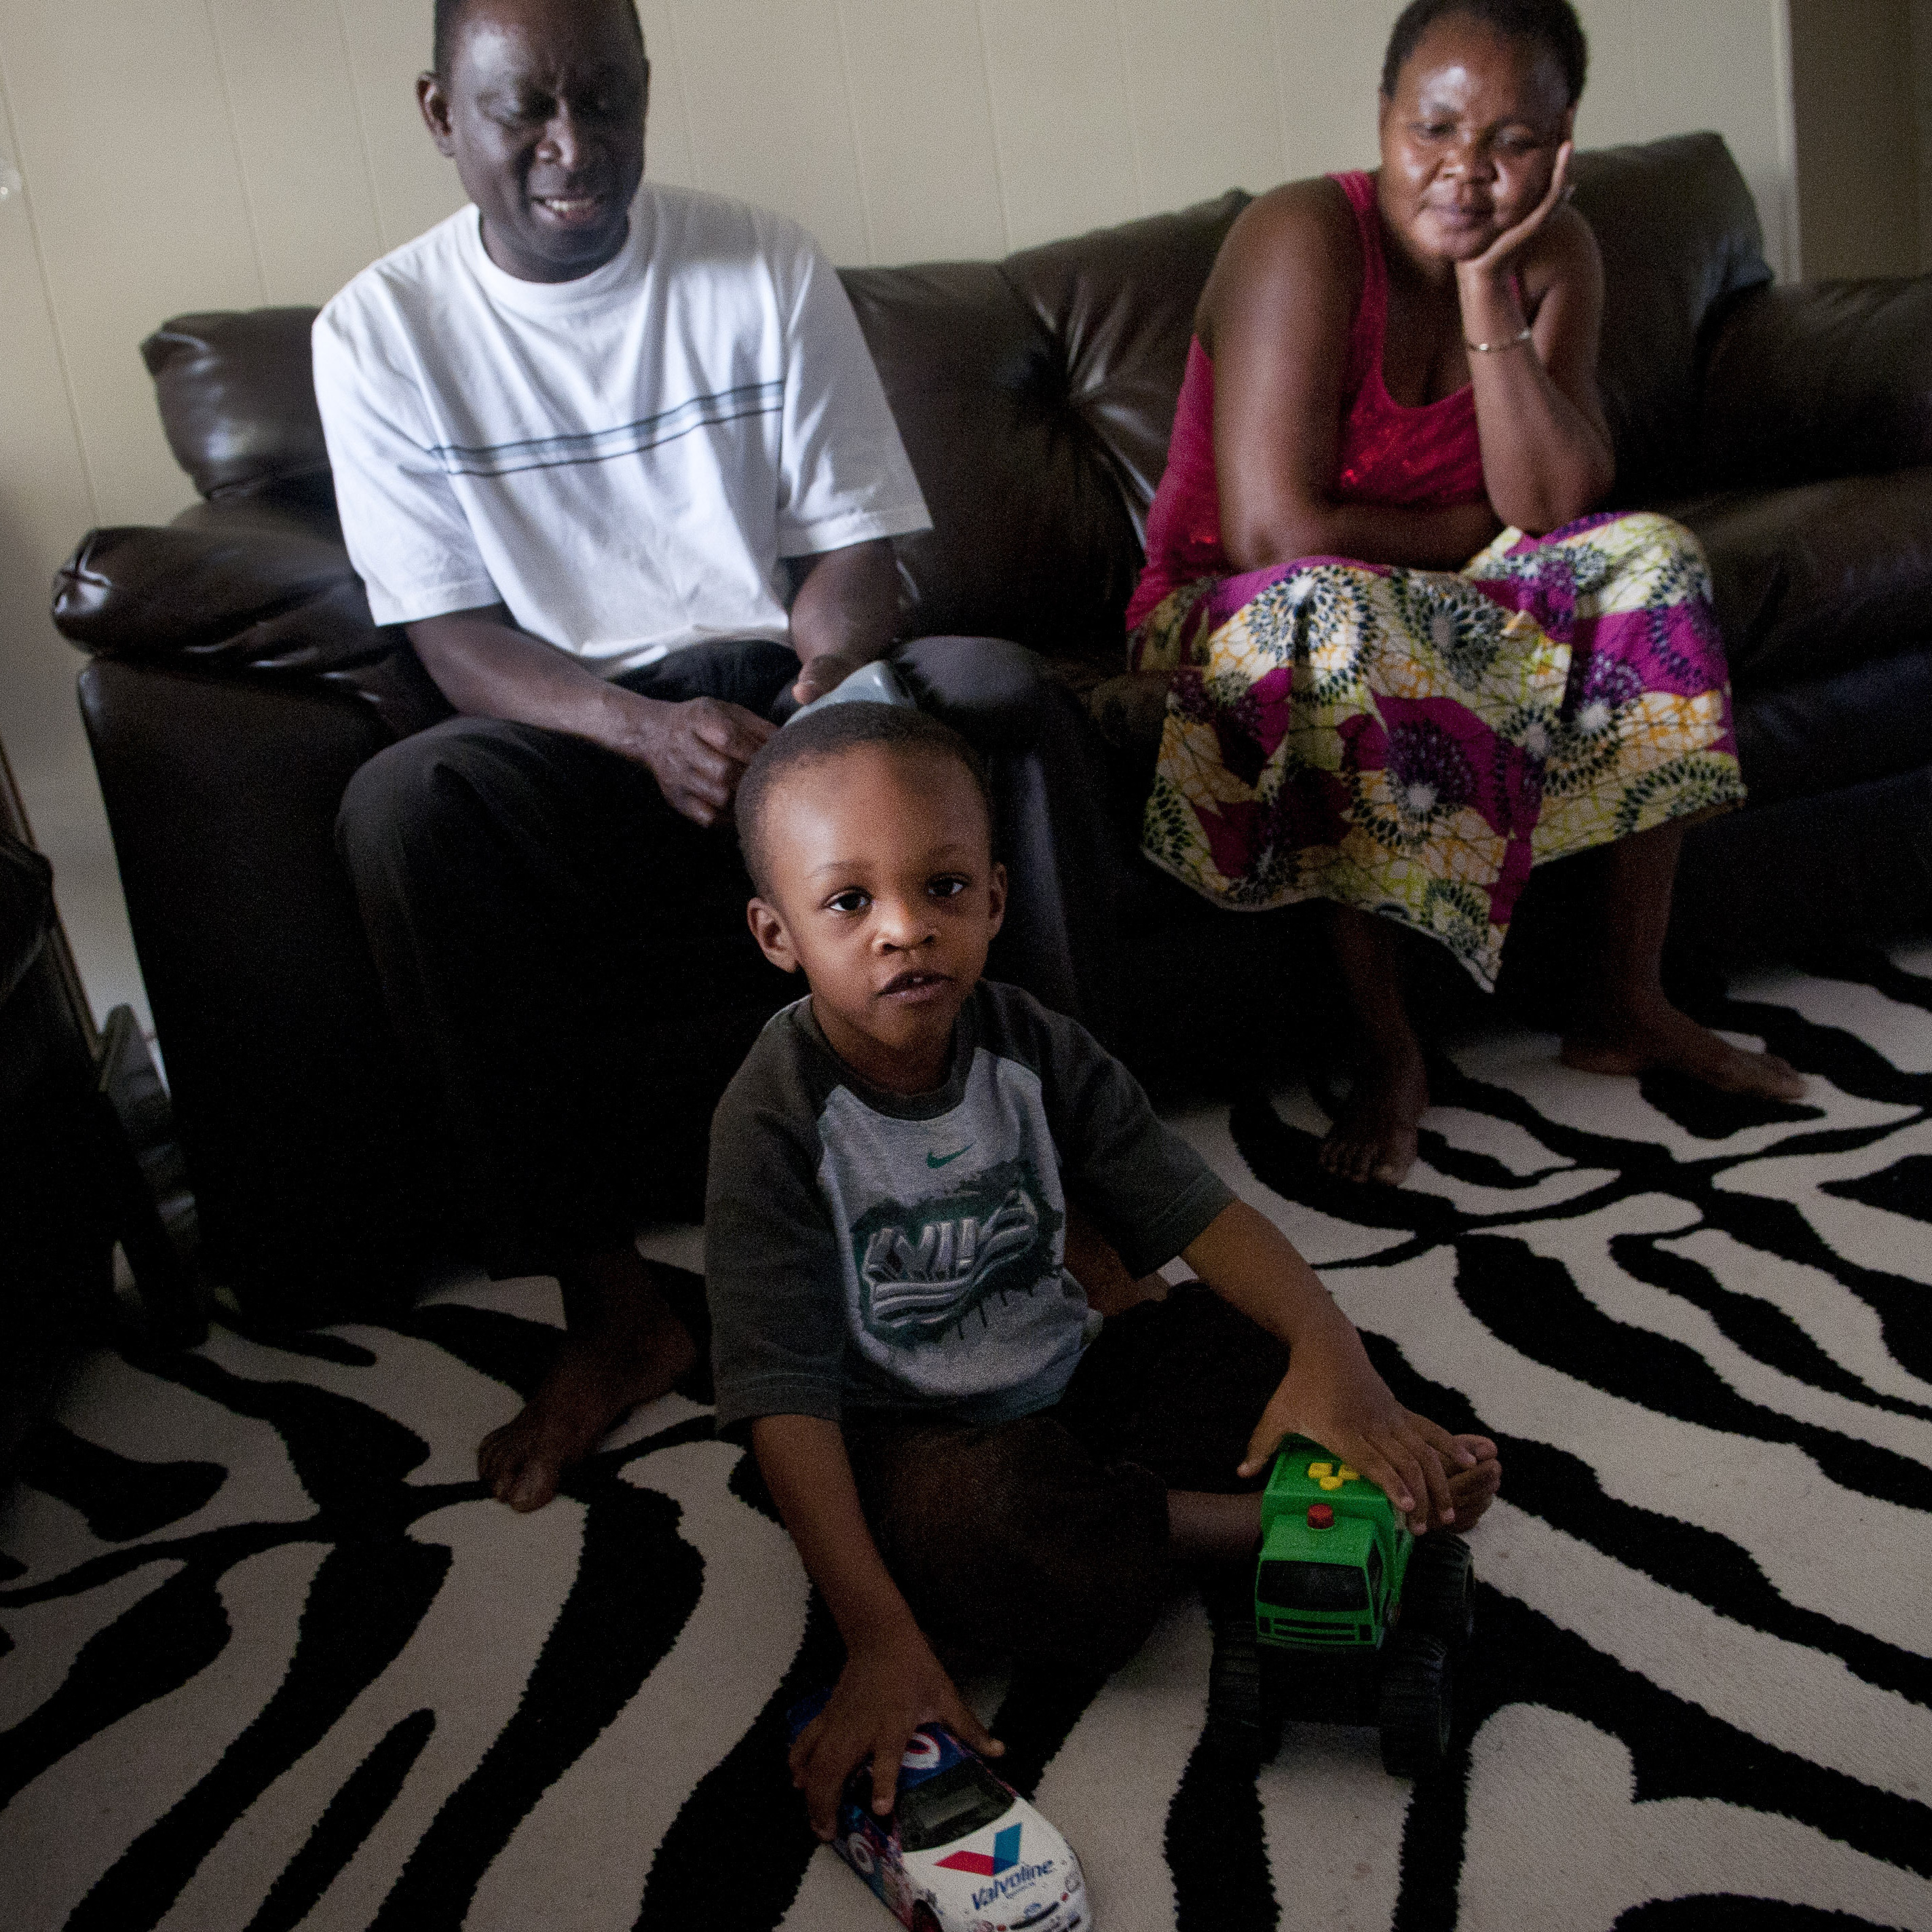 Fafaneva Phillip Avudufu (left) and his wife, Akouavi Davi, with their grandson Joshua, 4, in their apartment in Gaithersburg, Md.